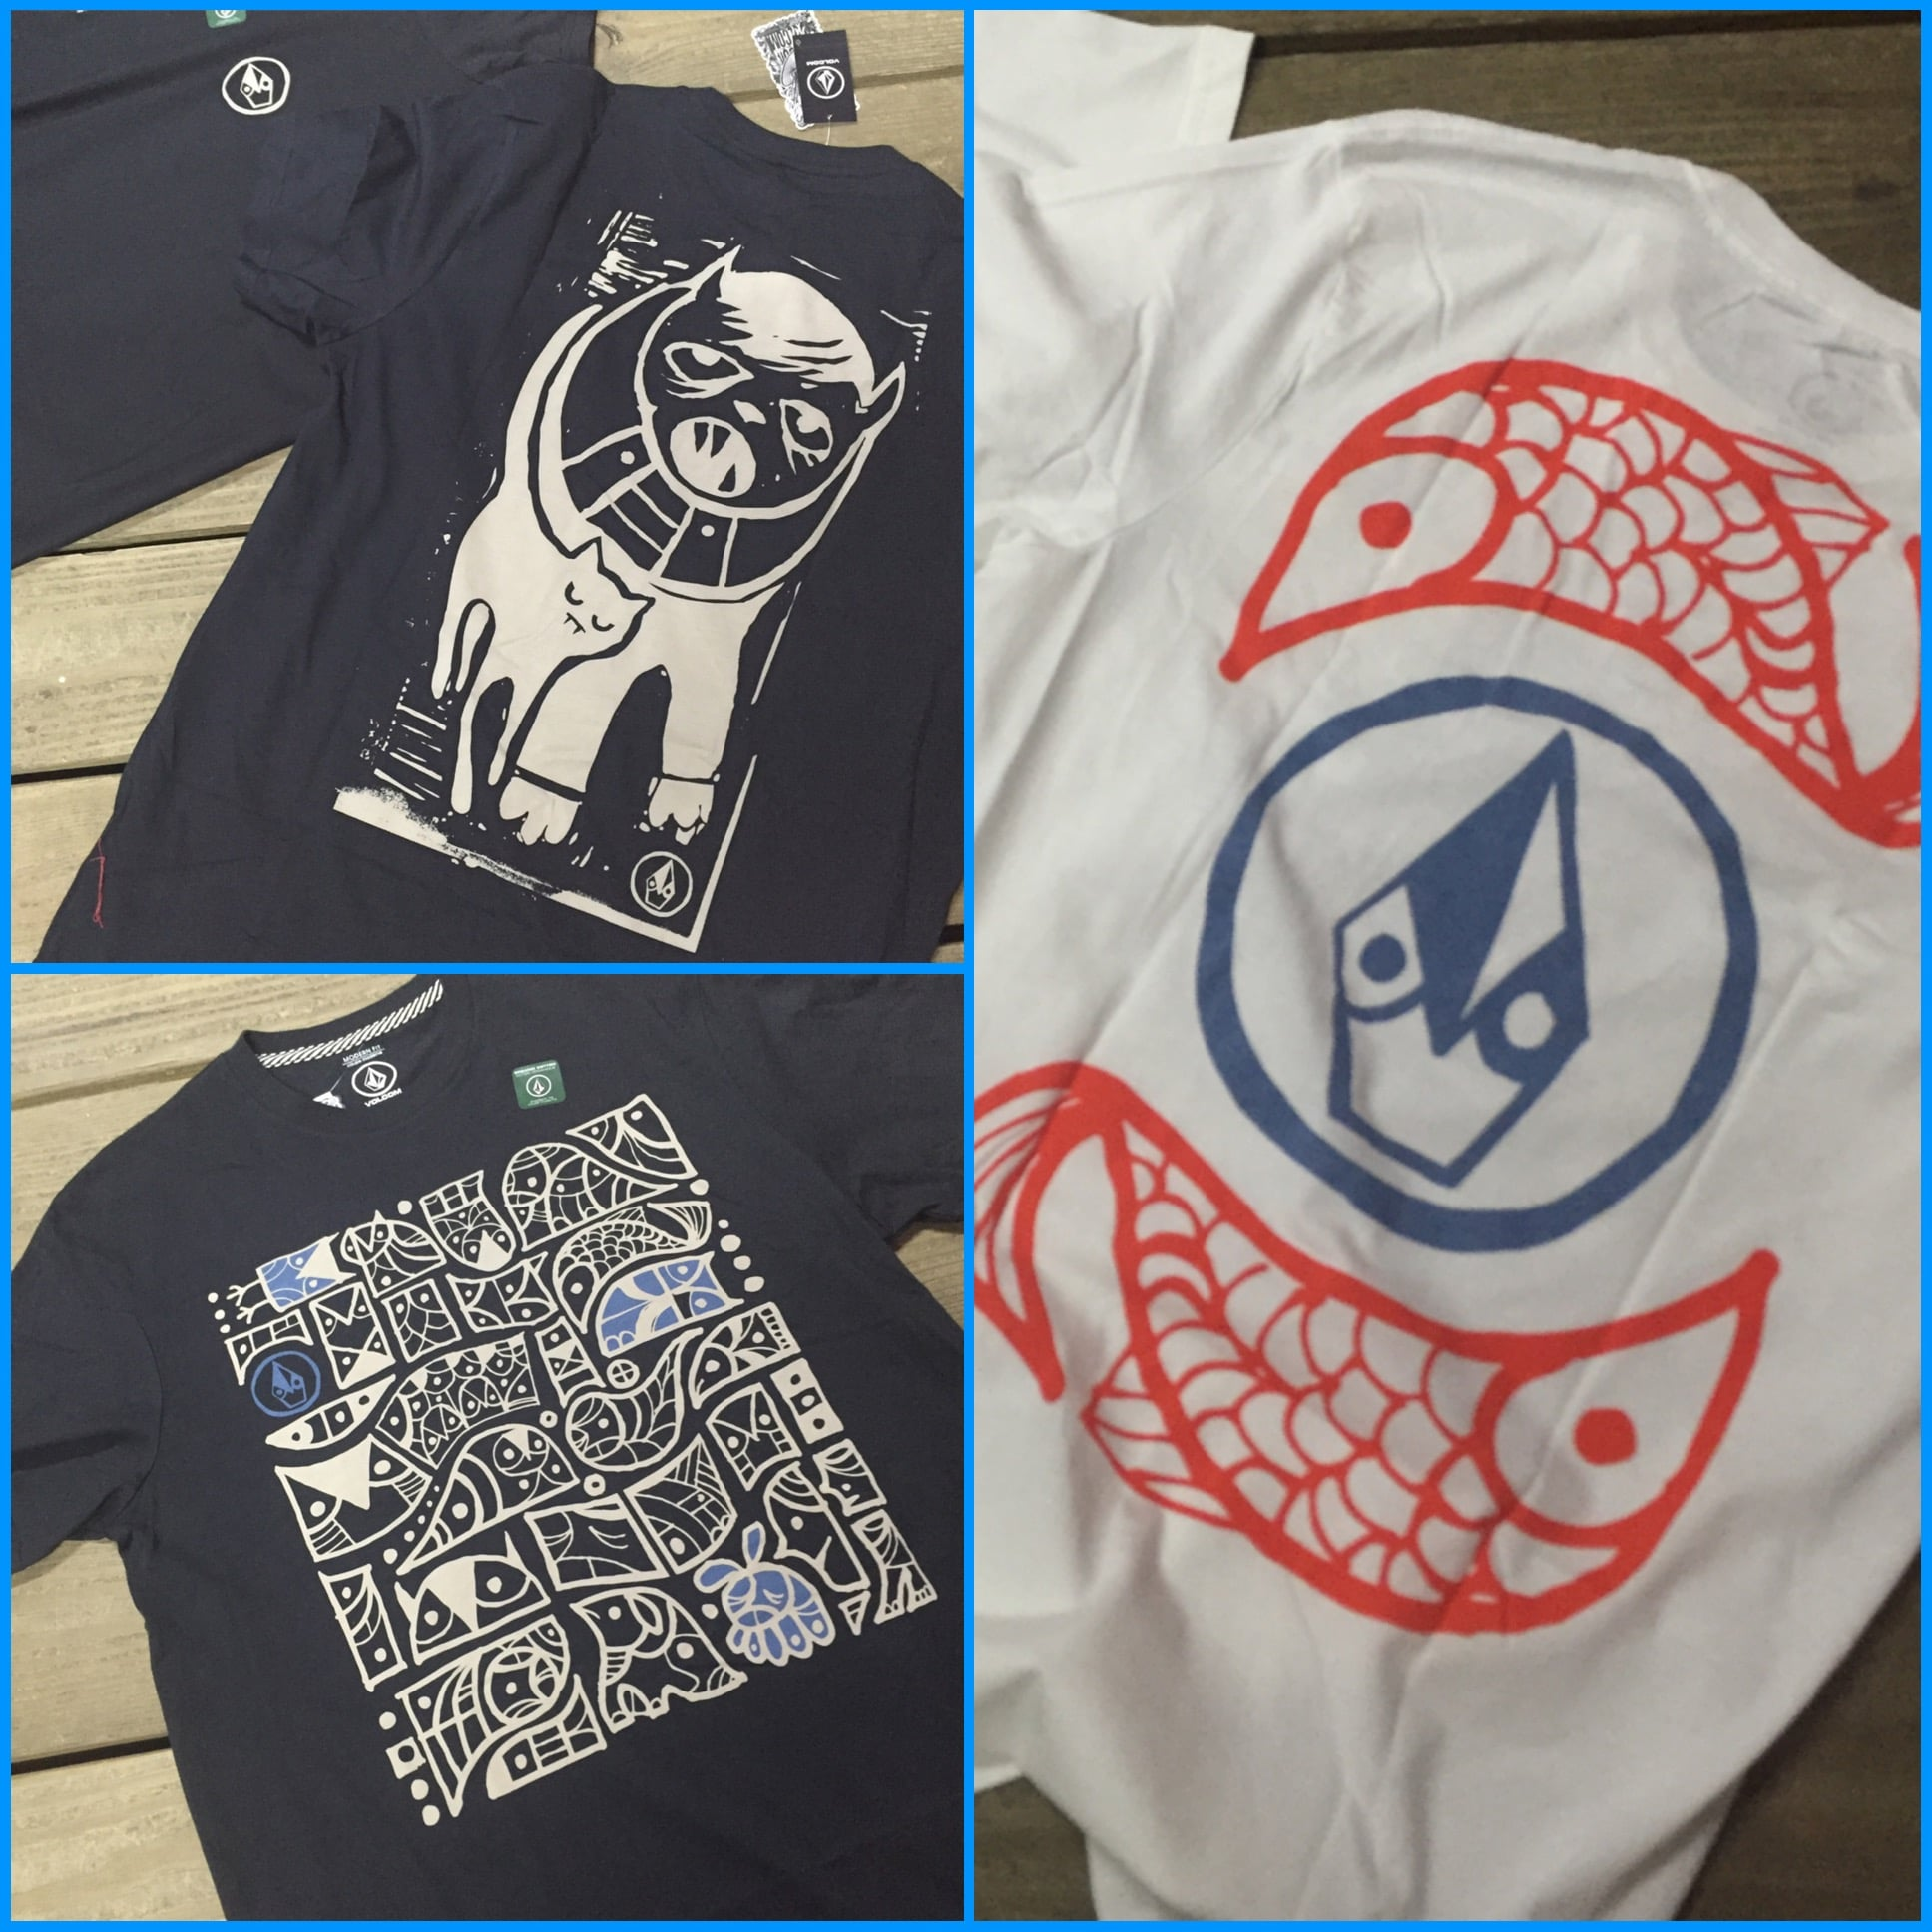 Volcom featured artist Don Pendleton collection